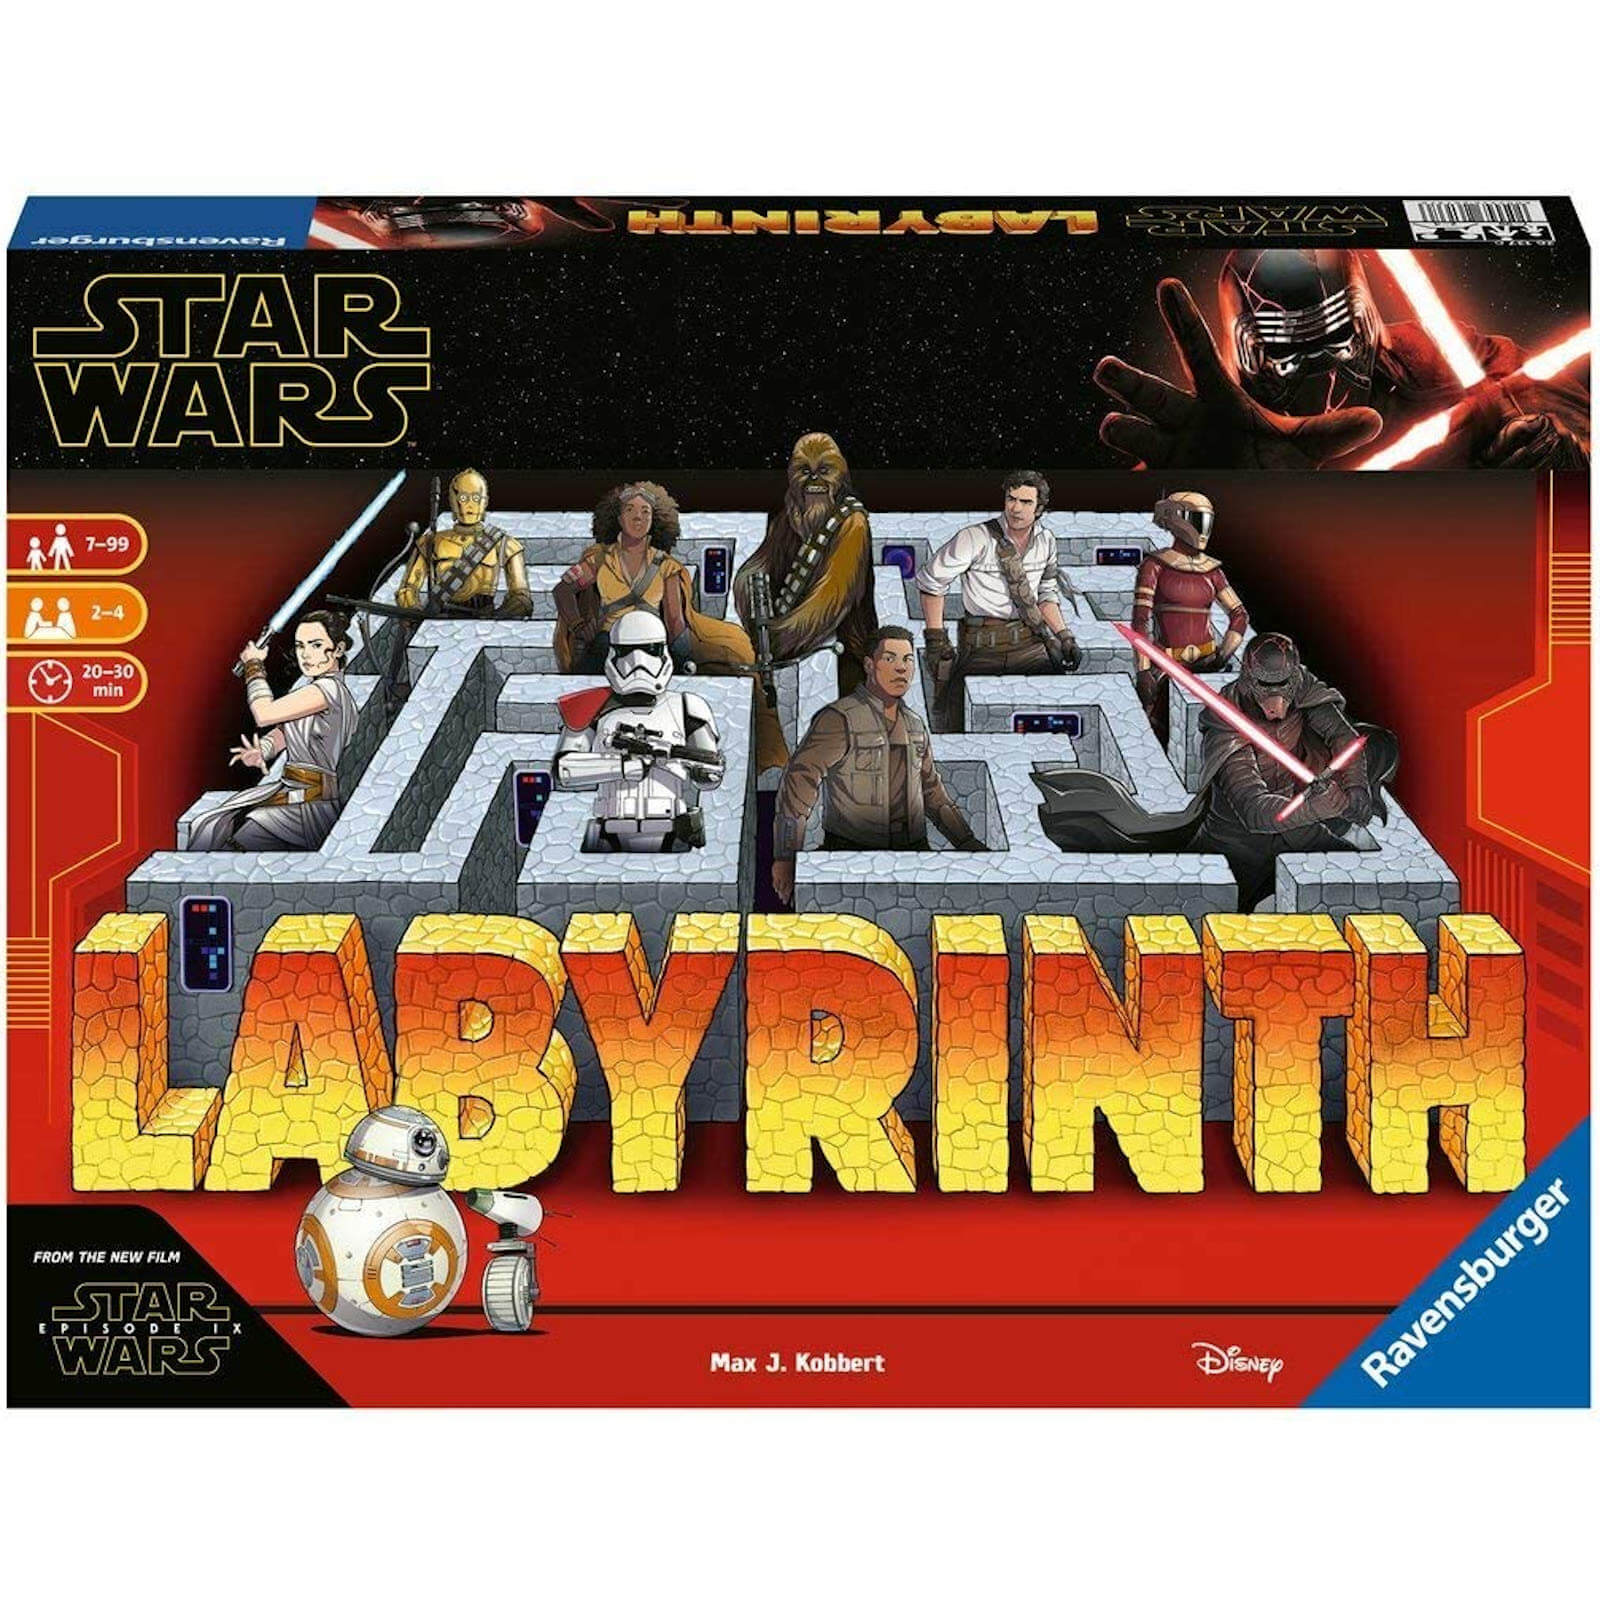 Image of Ravensburger Star Wars IX Labyrinth Board Game